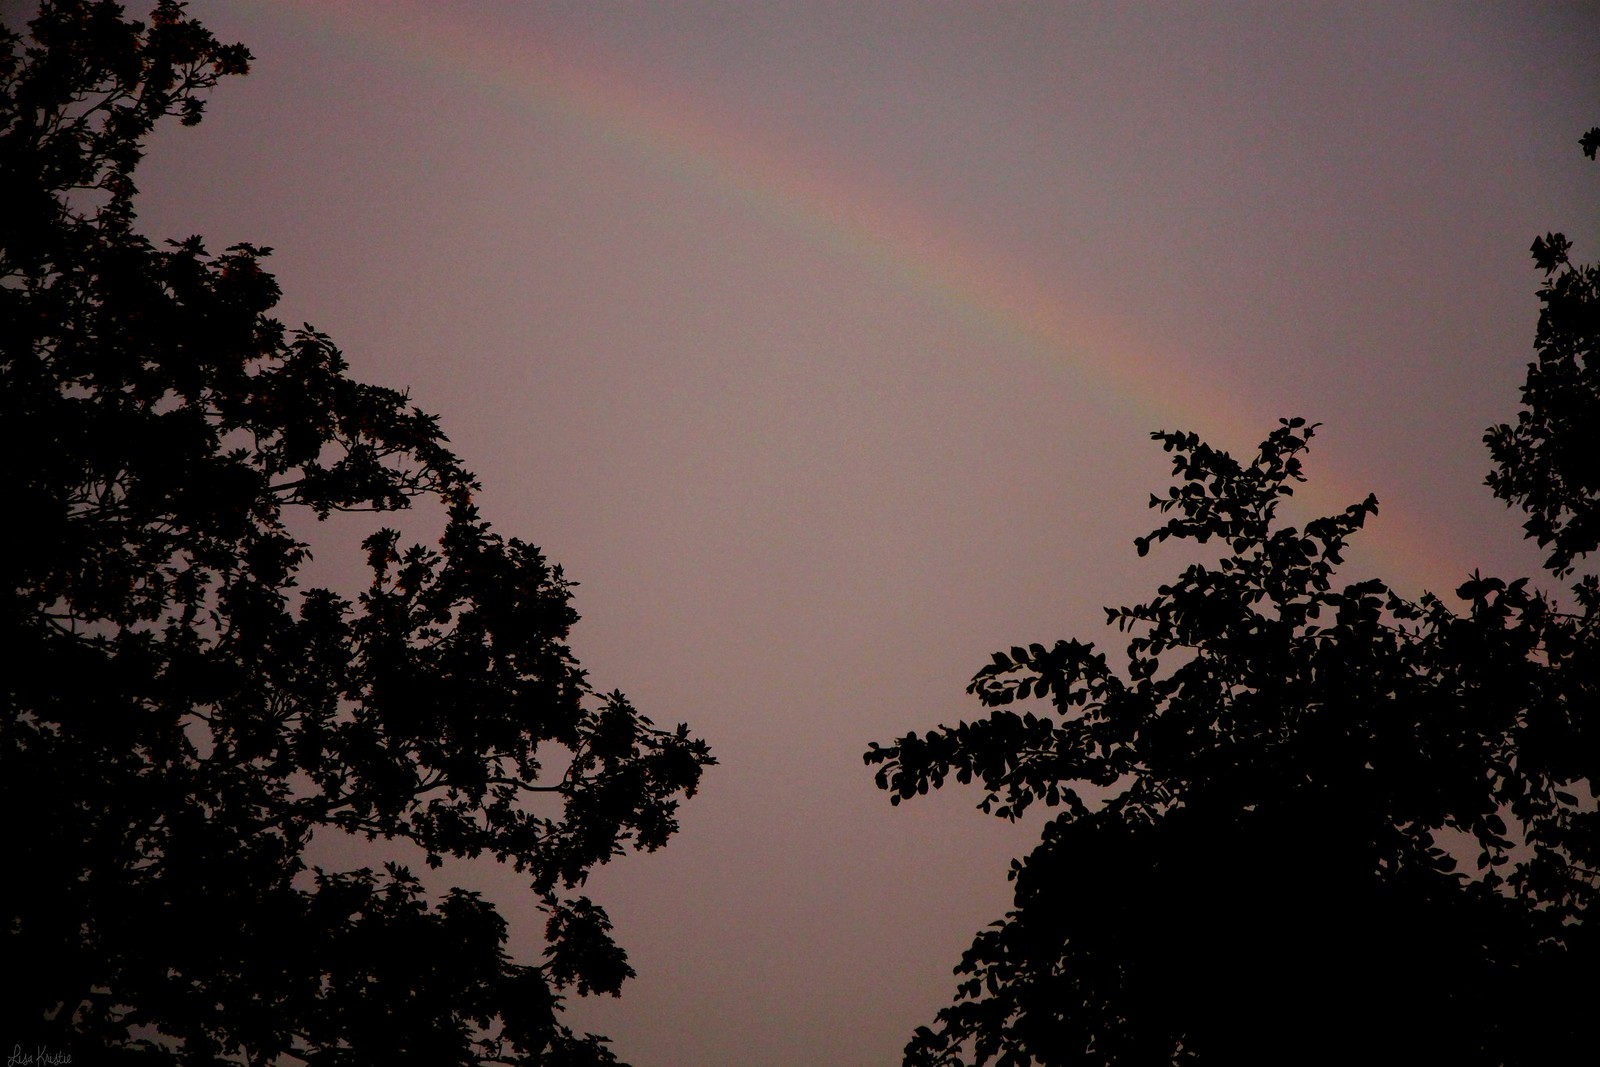 rainbow dusk before the storm yellow purple sky trees outline shadows evening summer